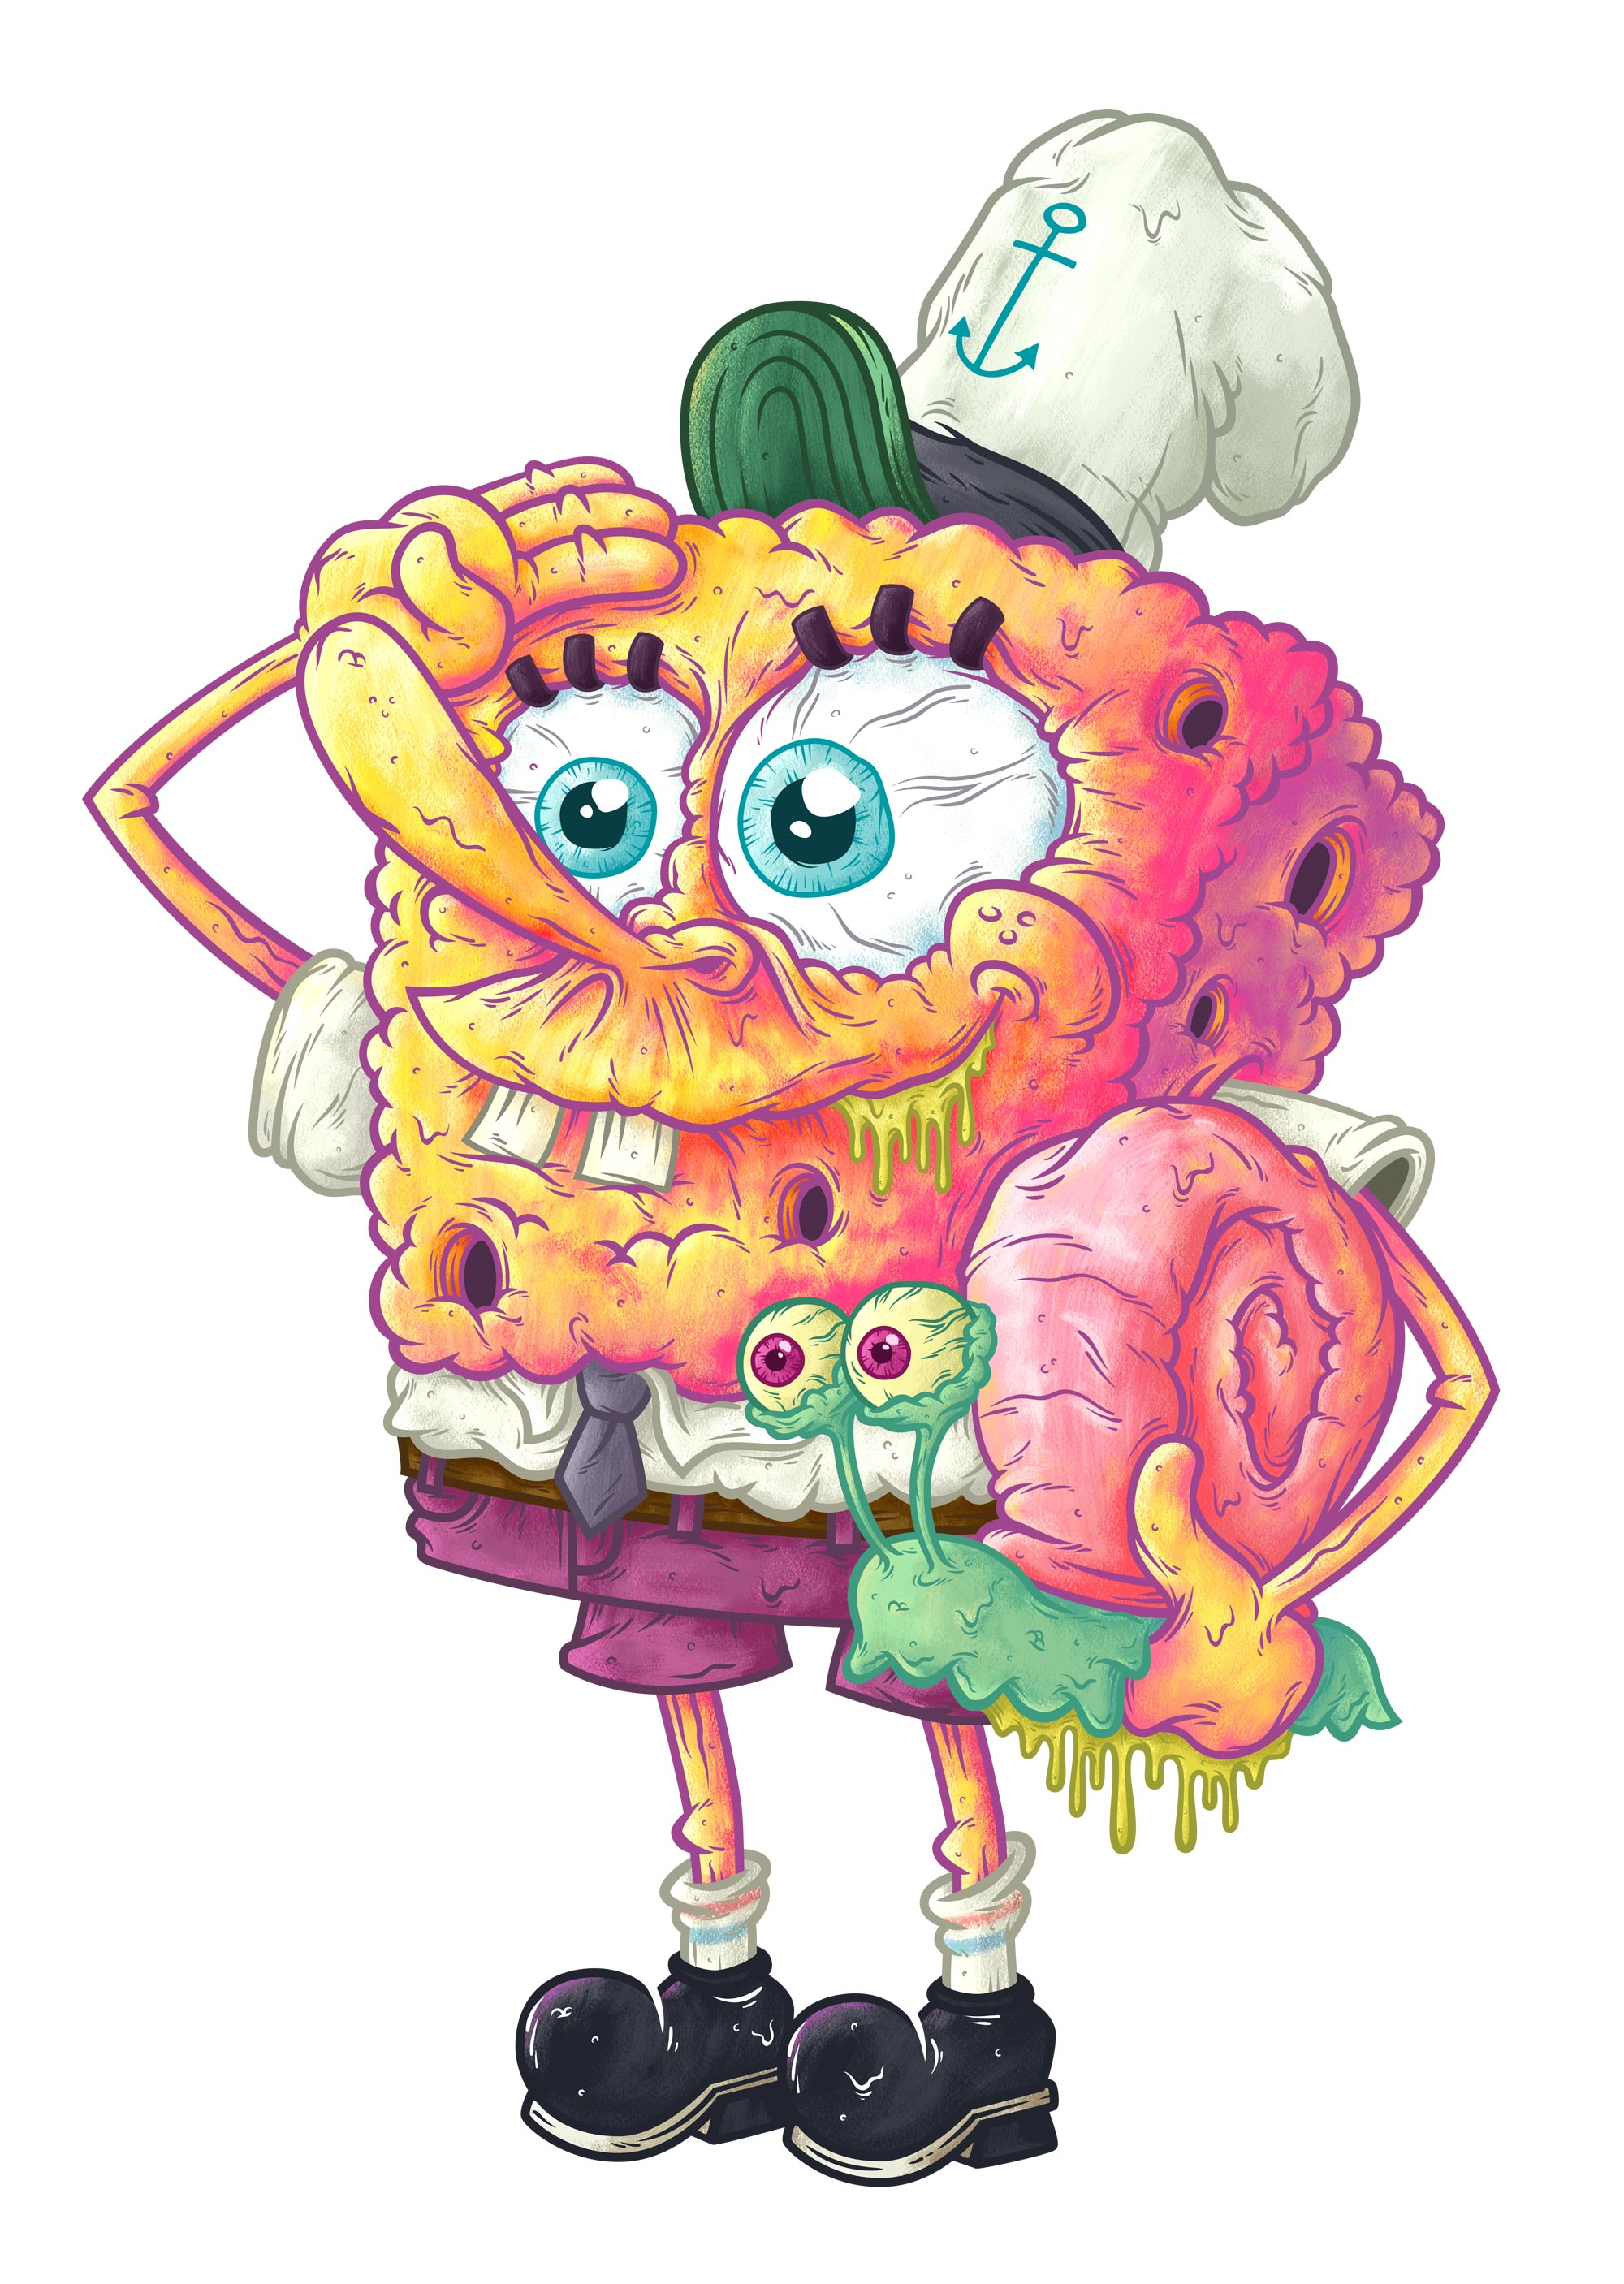 Gary and Bob - Illustration - Nathan Miller - Sponge bob square pants